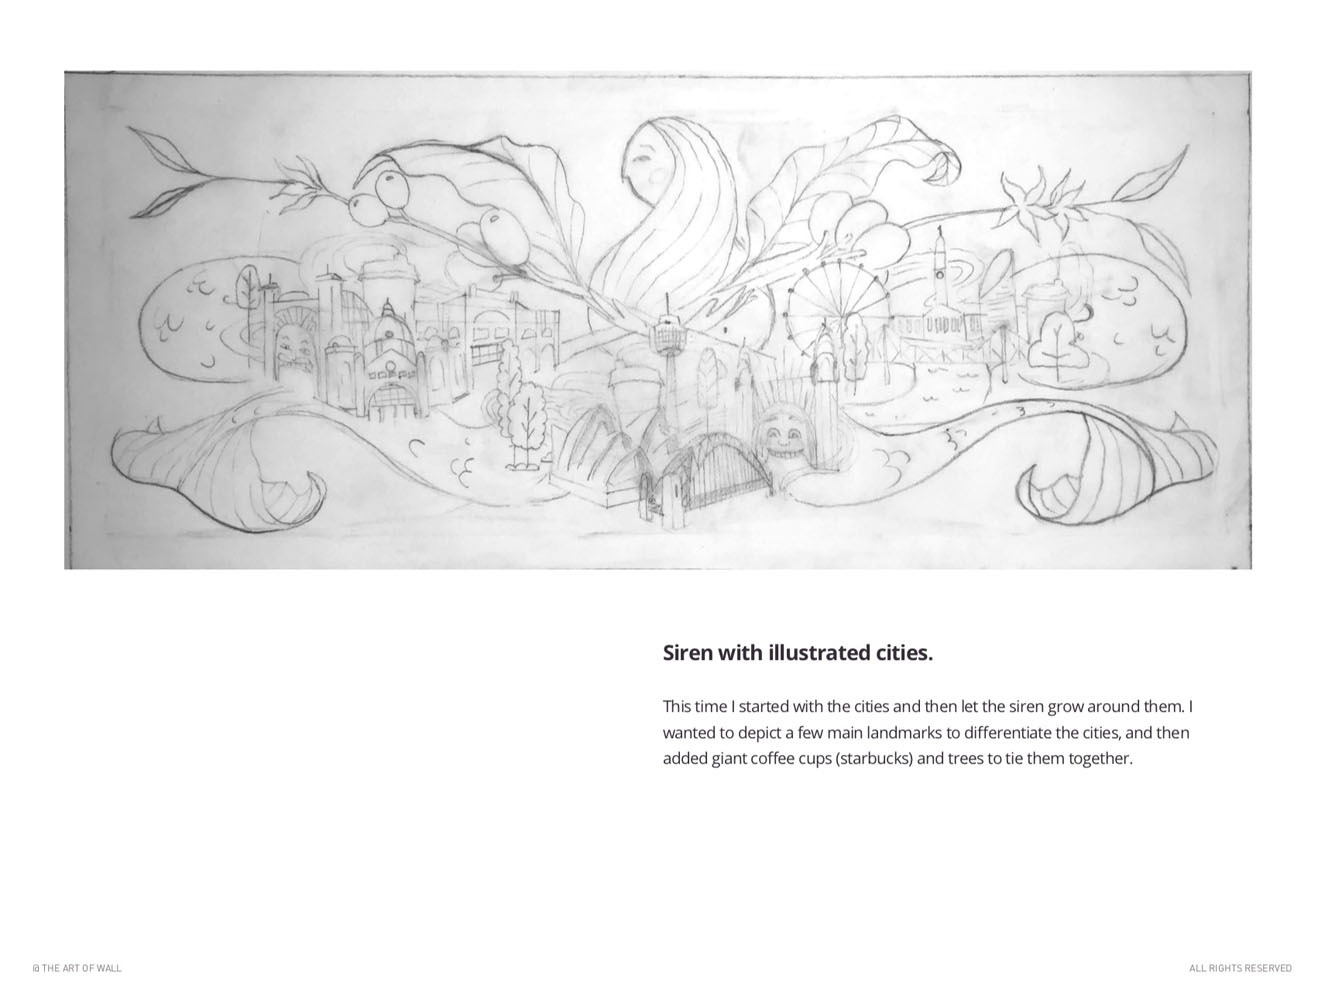 the-art-of-wall-starbucks-office-mural-wip-2